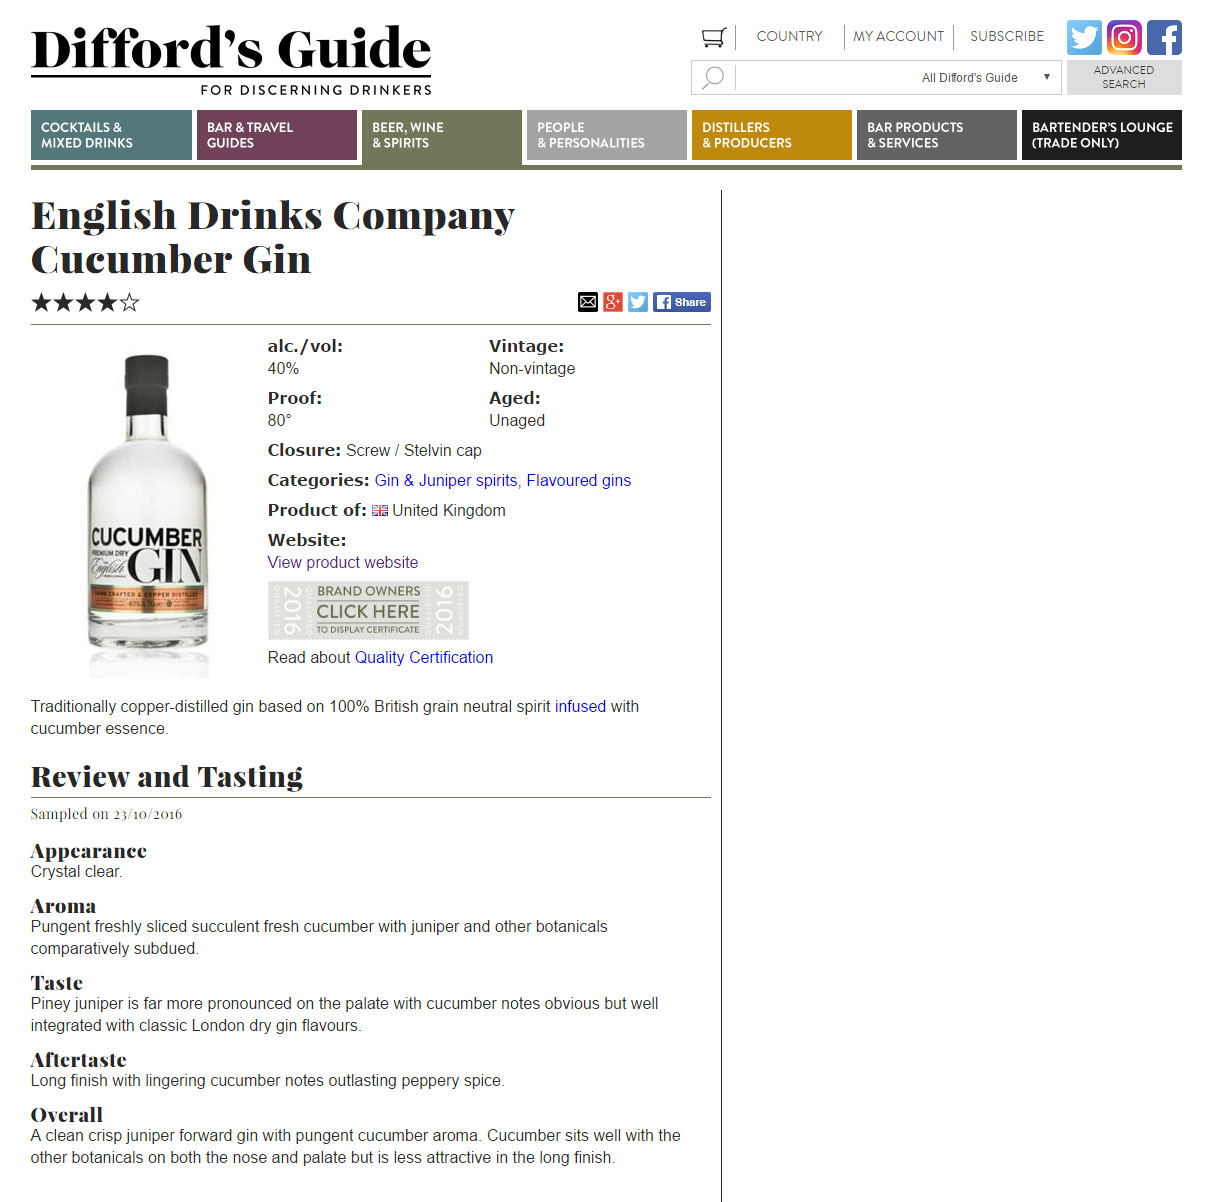 Diffords Guide Rates Cucumber Gin